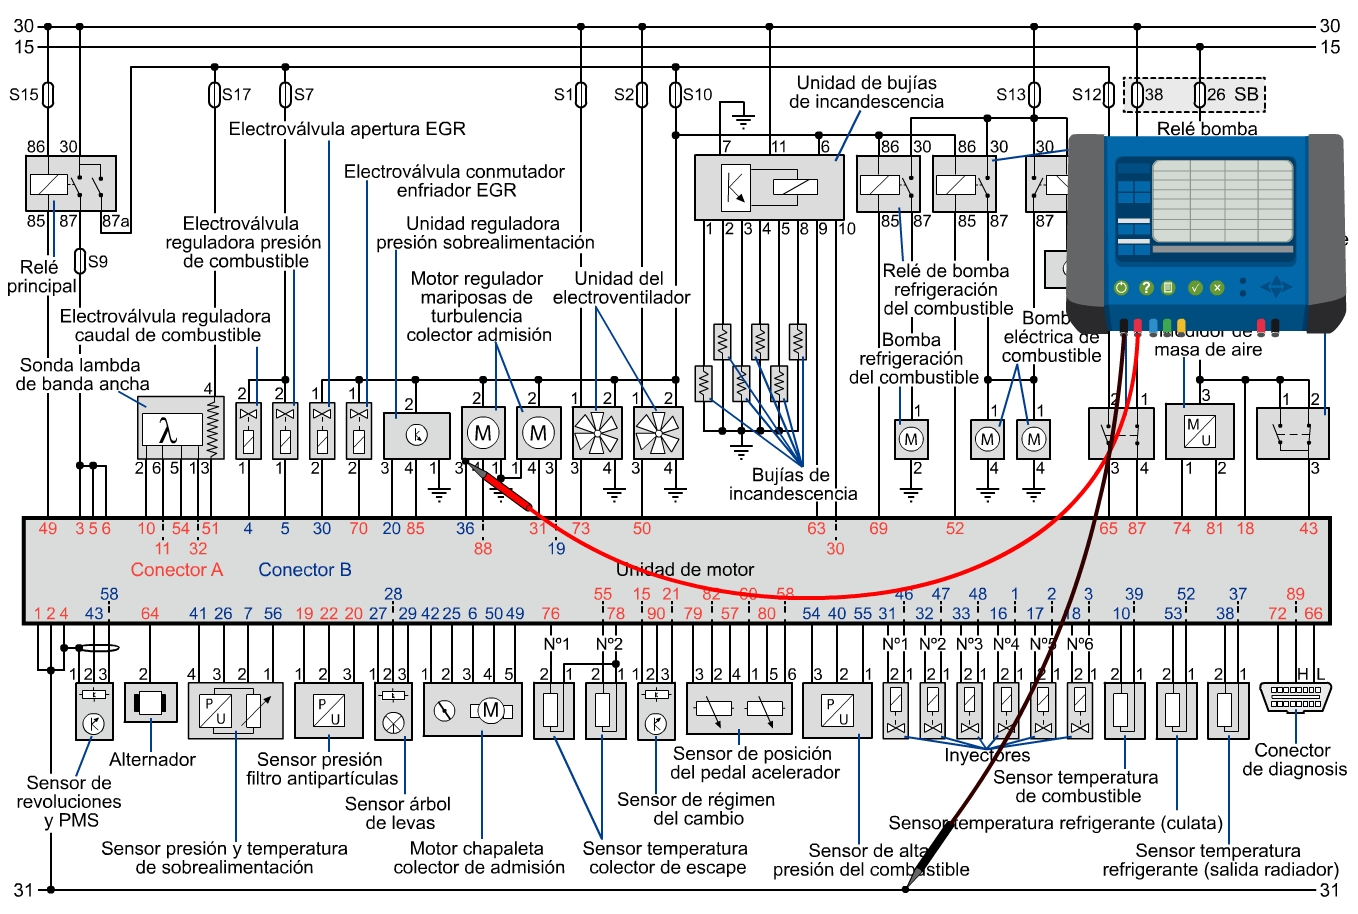 Wiring diagram of the 3.0 TDI (BKS) engine. (Information taken from  www.dis-net.com)